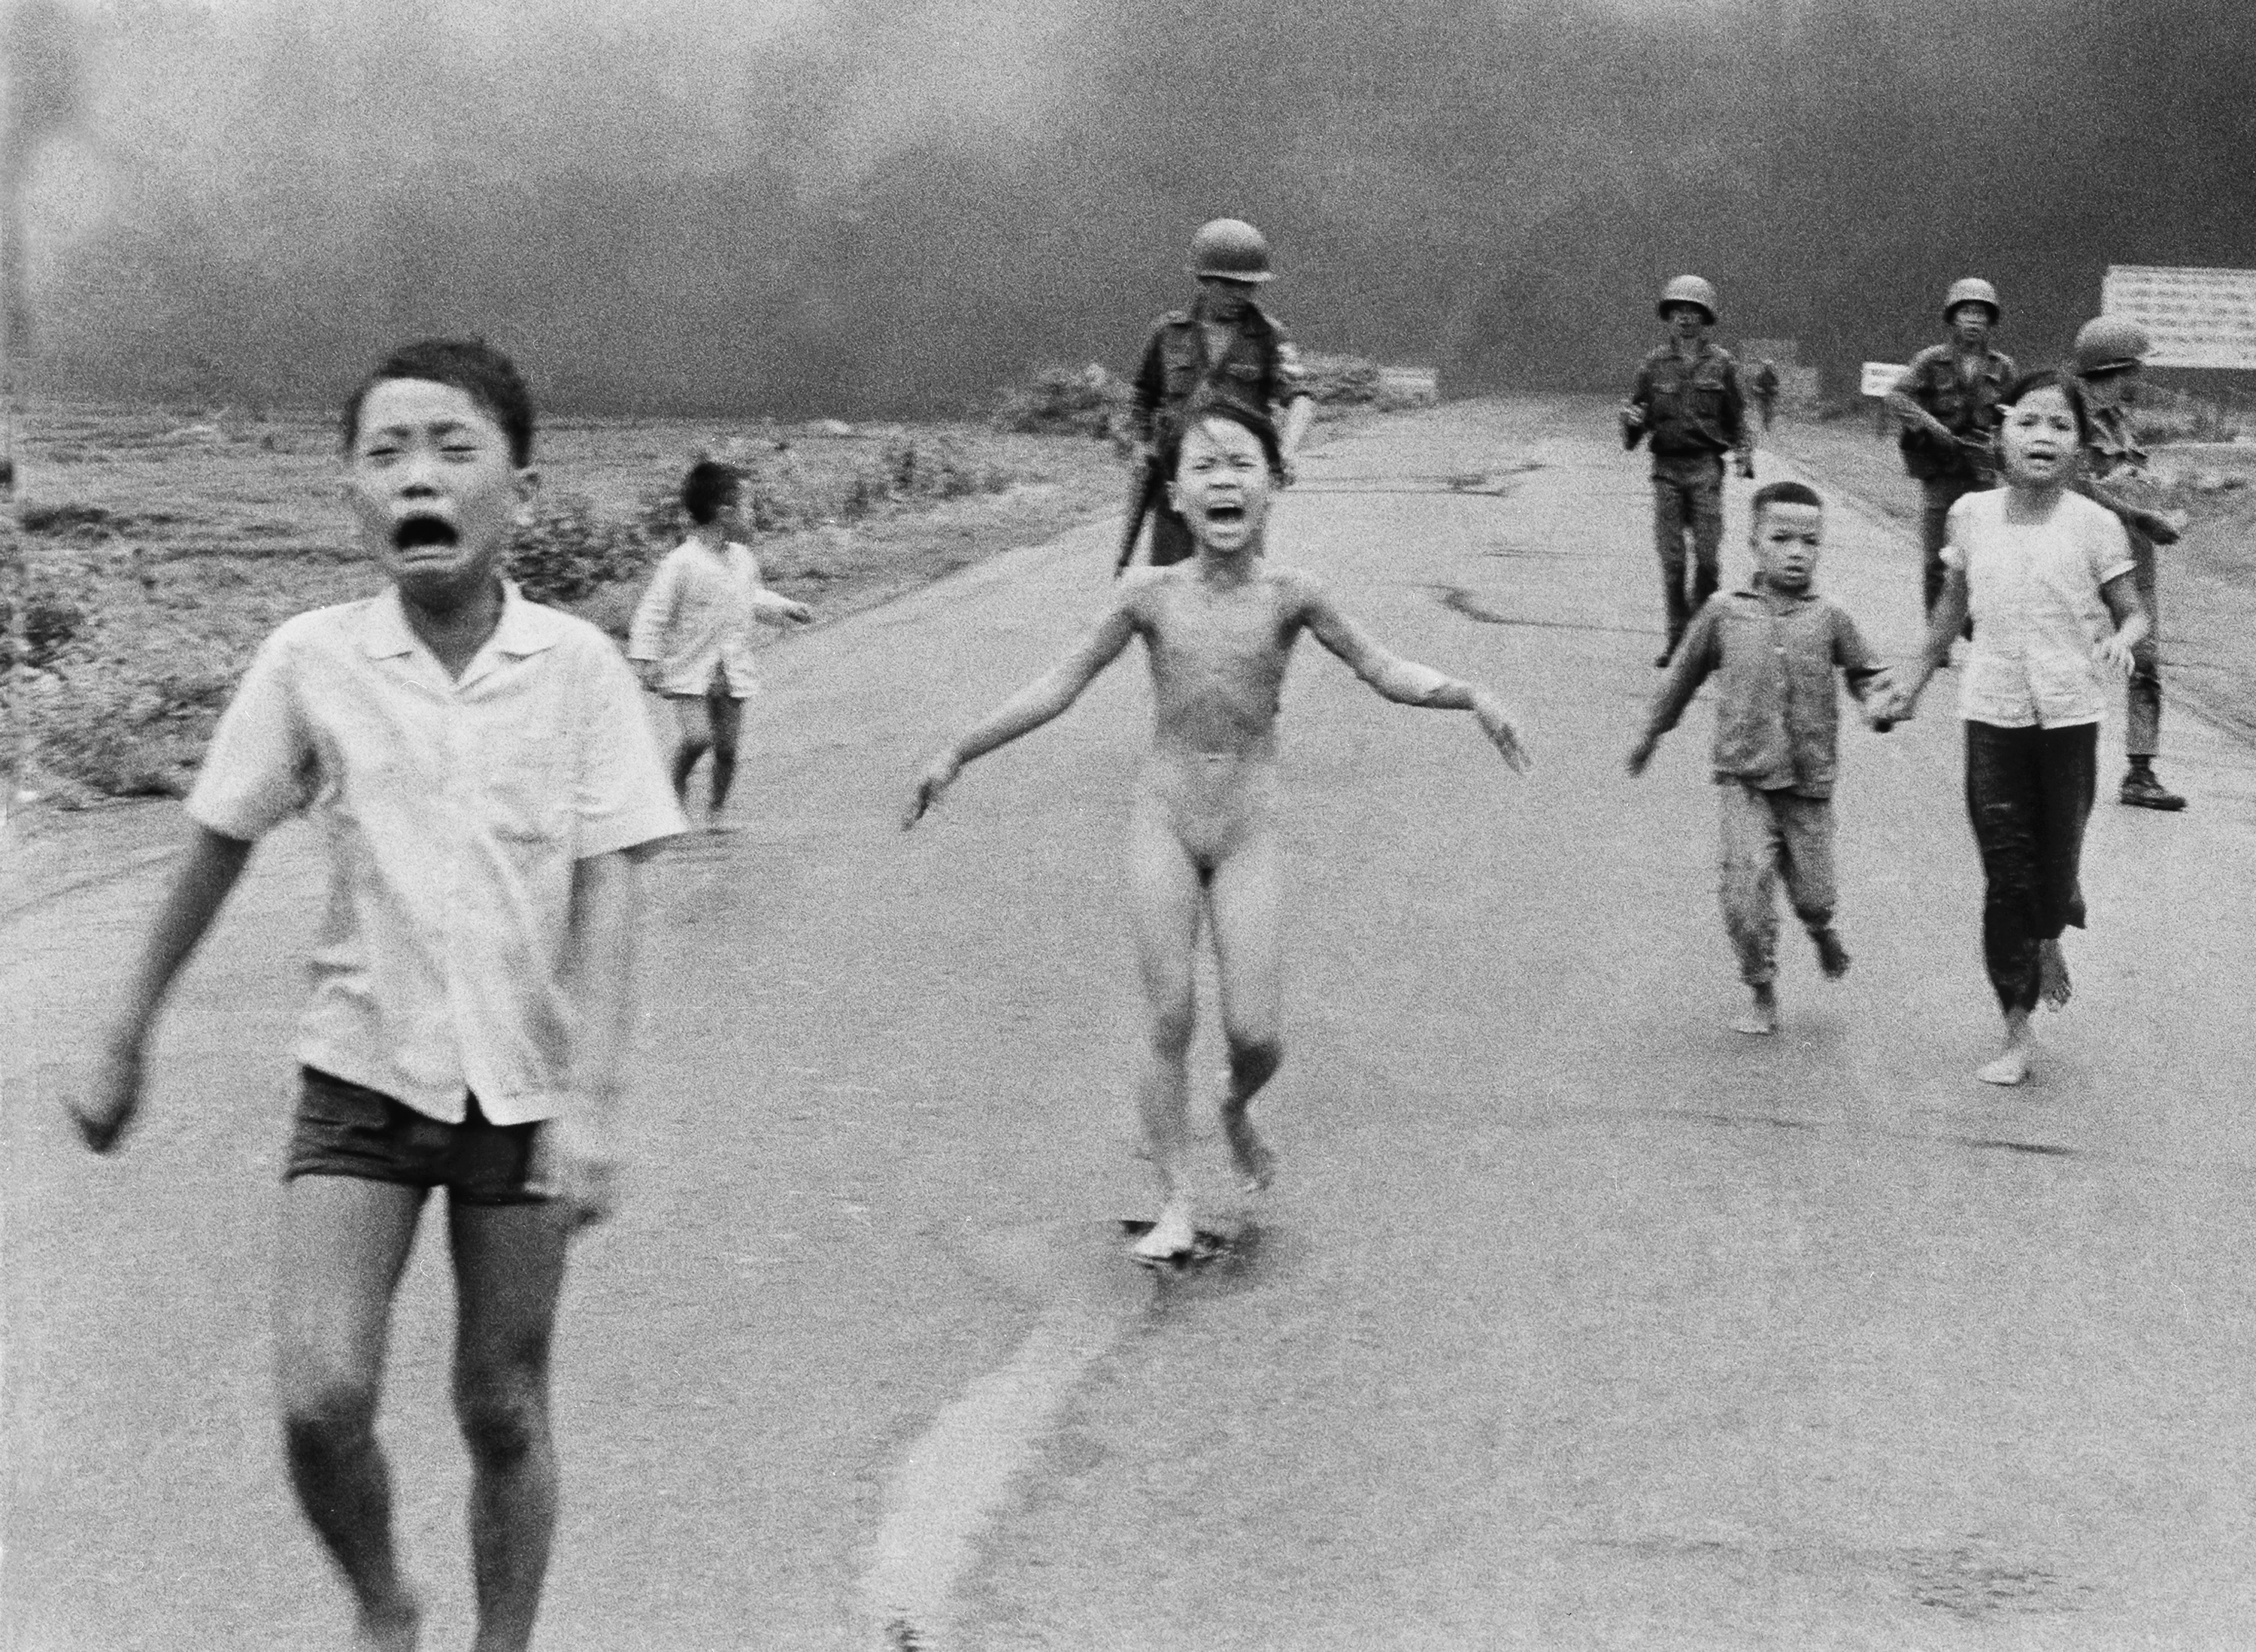 Kim Phuc, as a child, runs down the road, her skin burning with napalm.